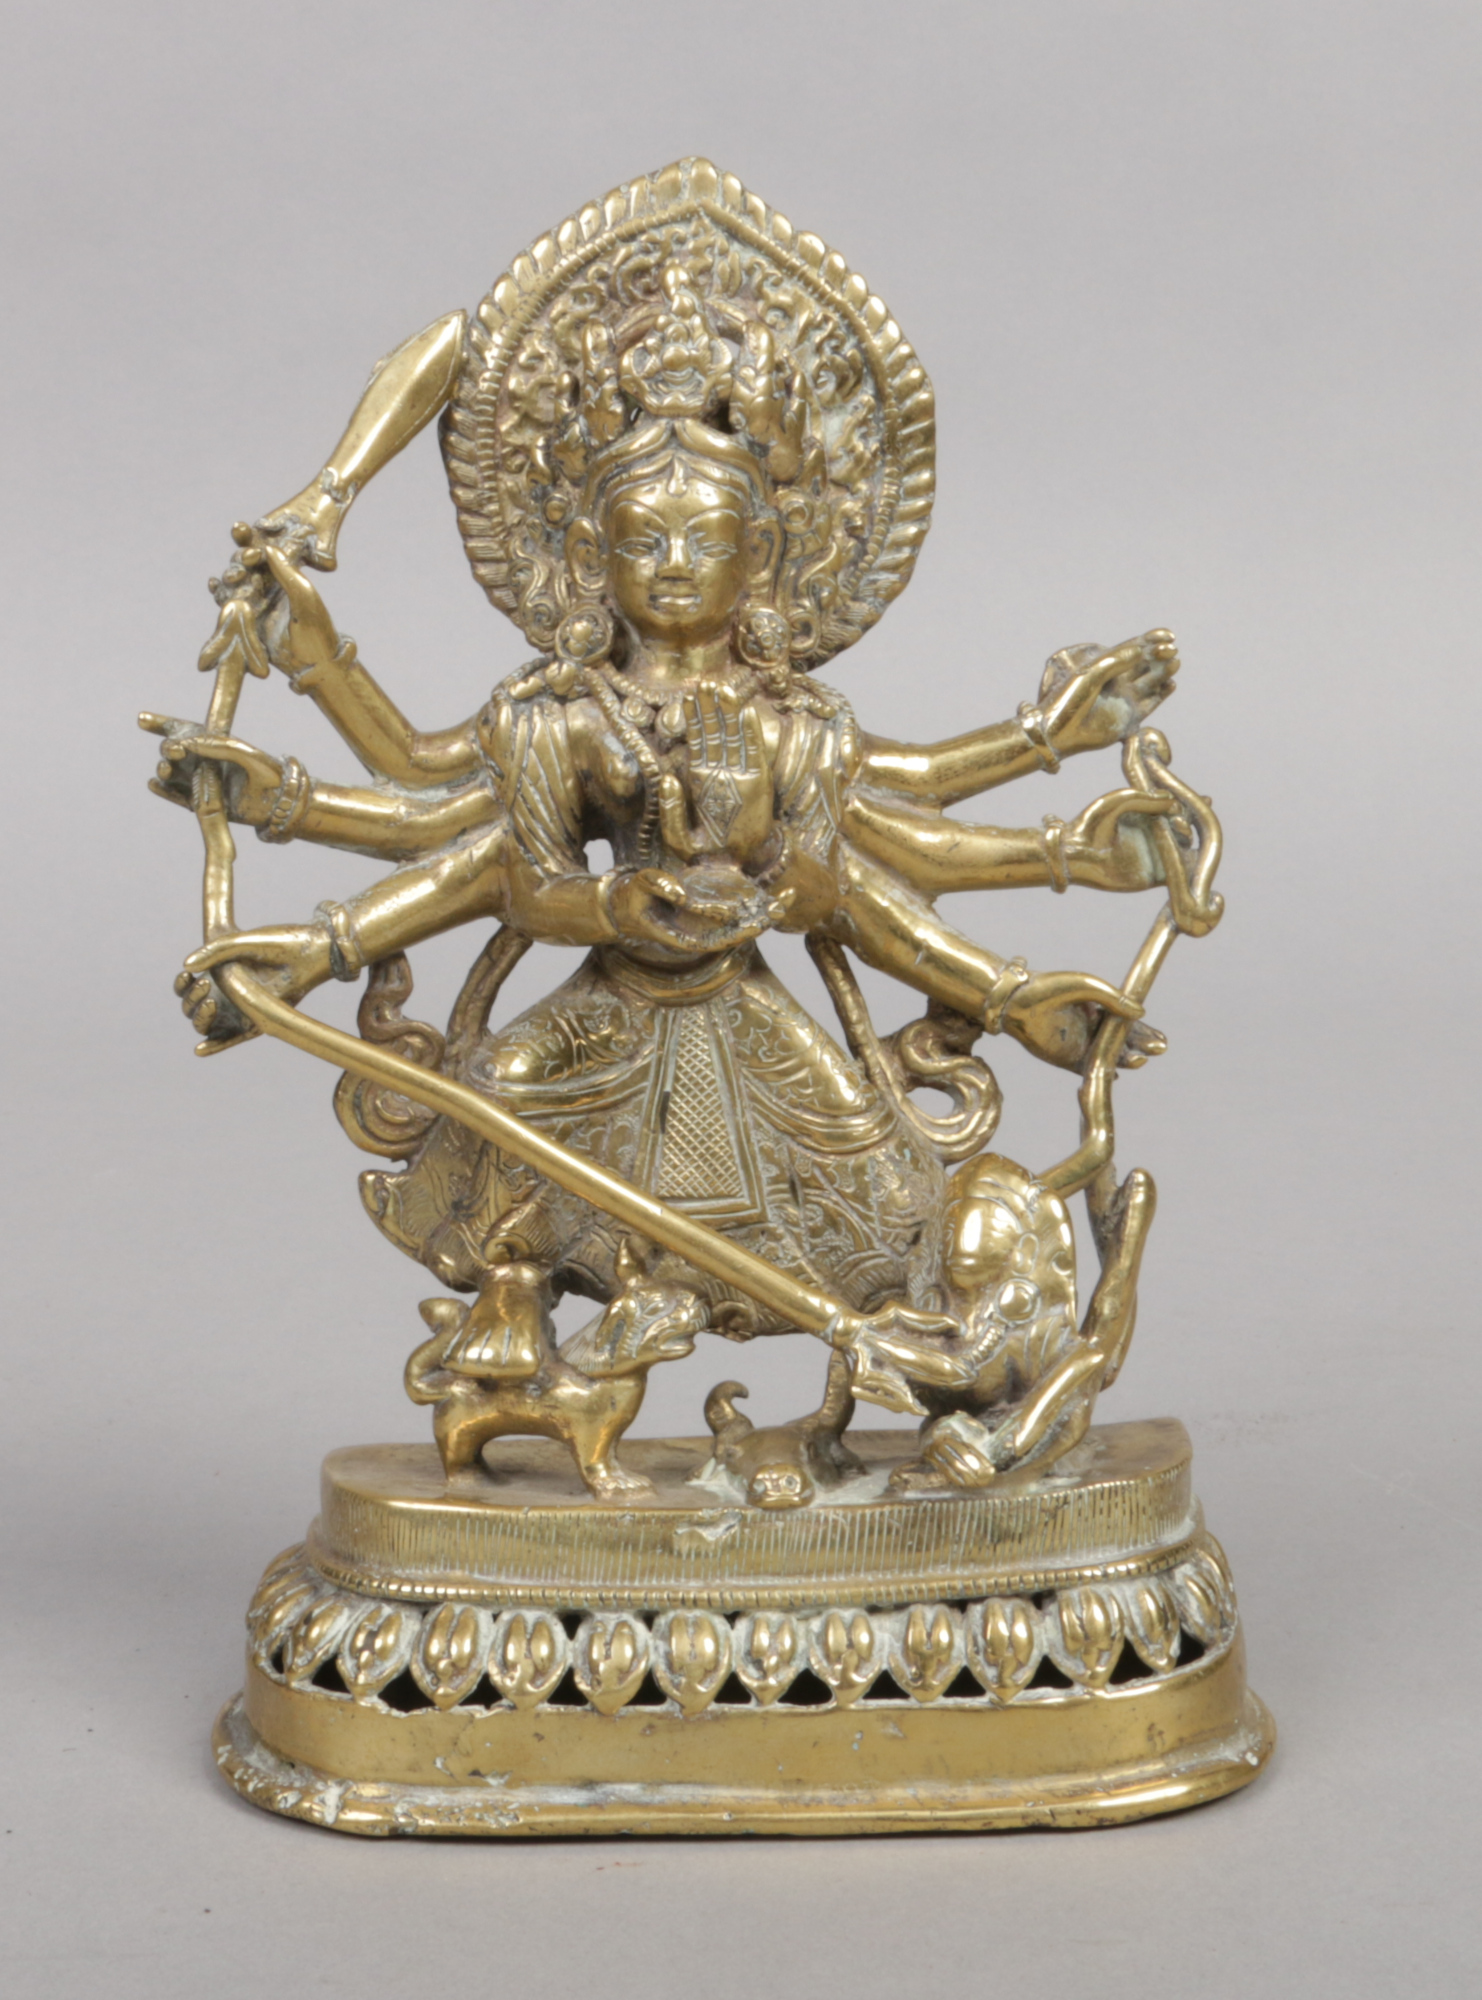 Lot 207 - A 17th century Sino-Tibetan polished bronze devotional statue. Formed as an eight armed Buddha